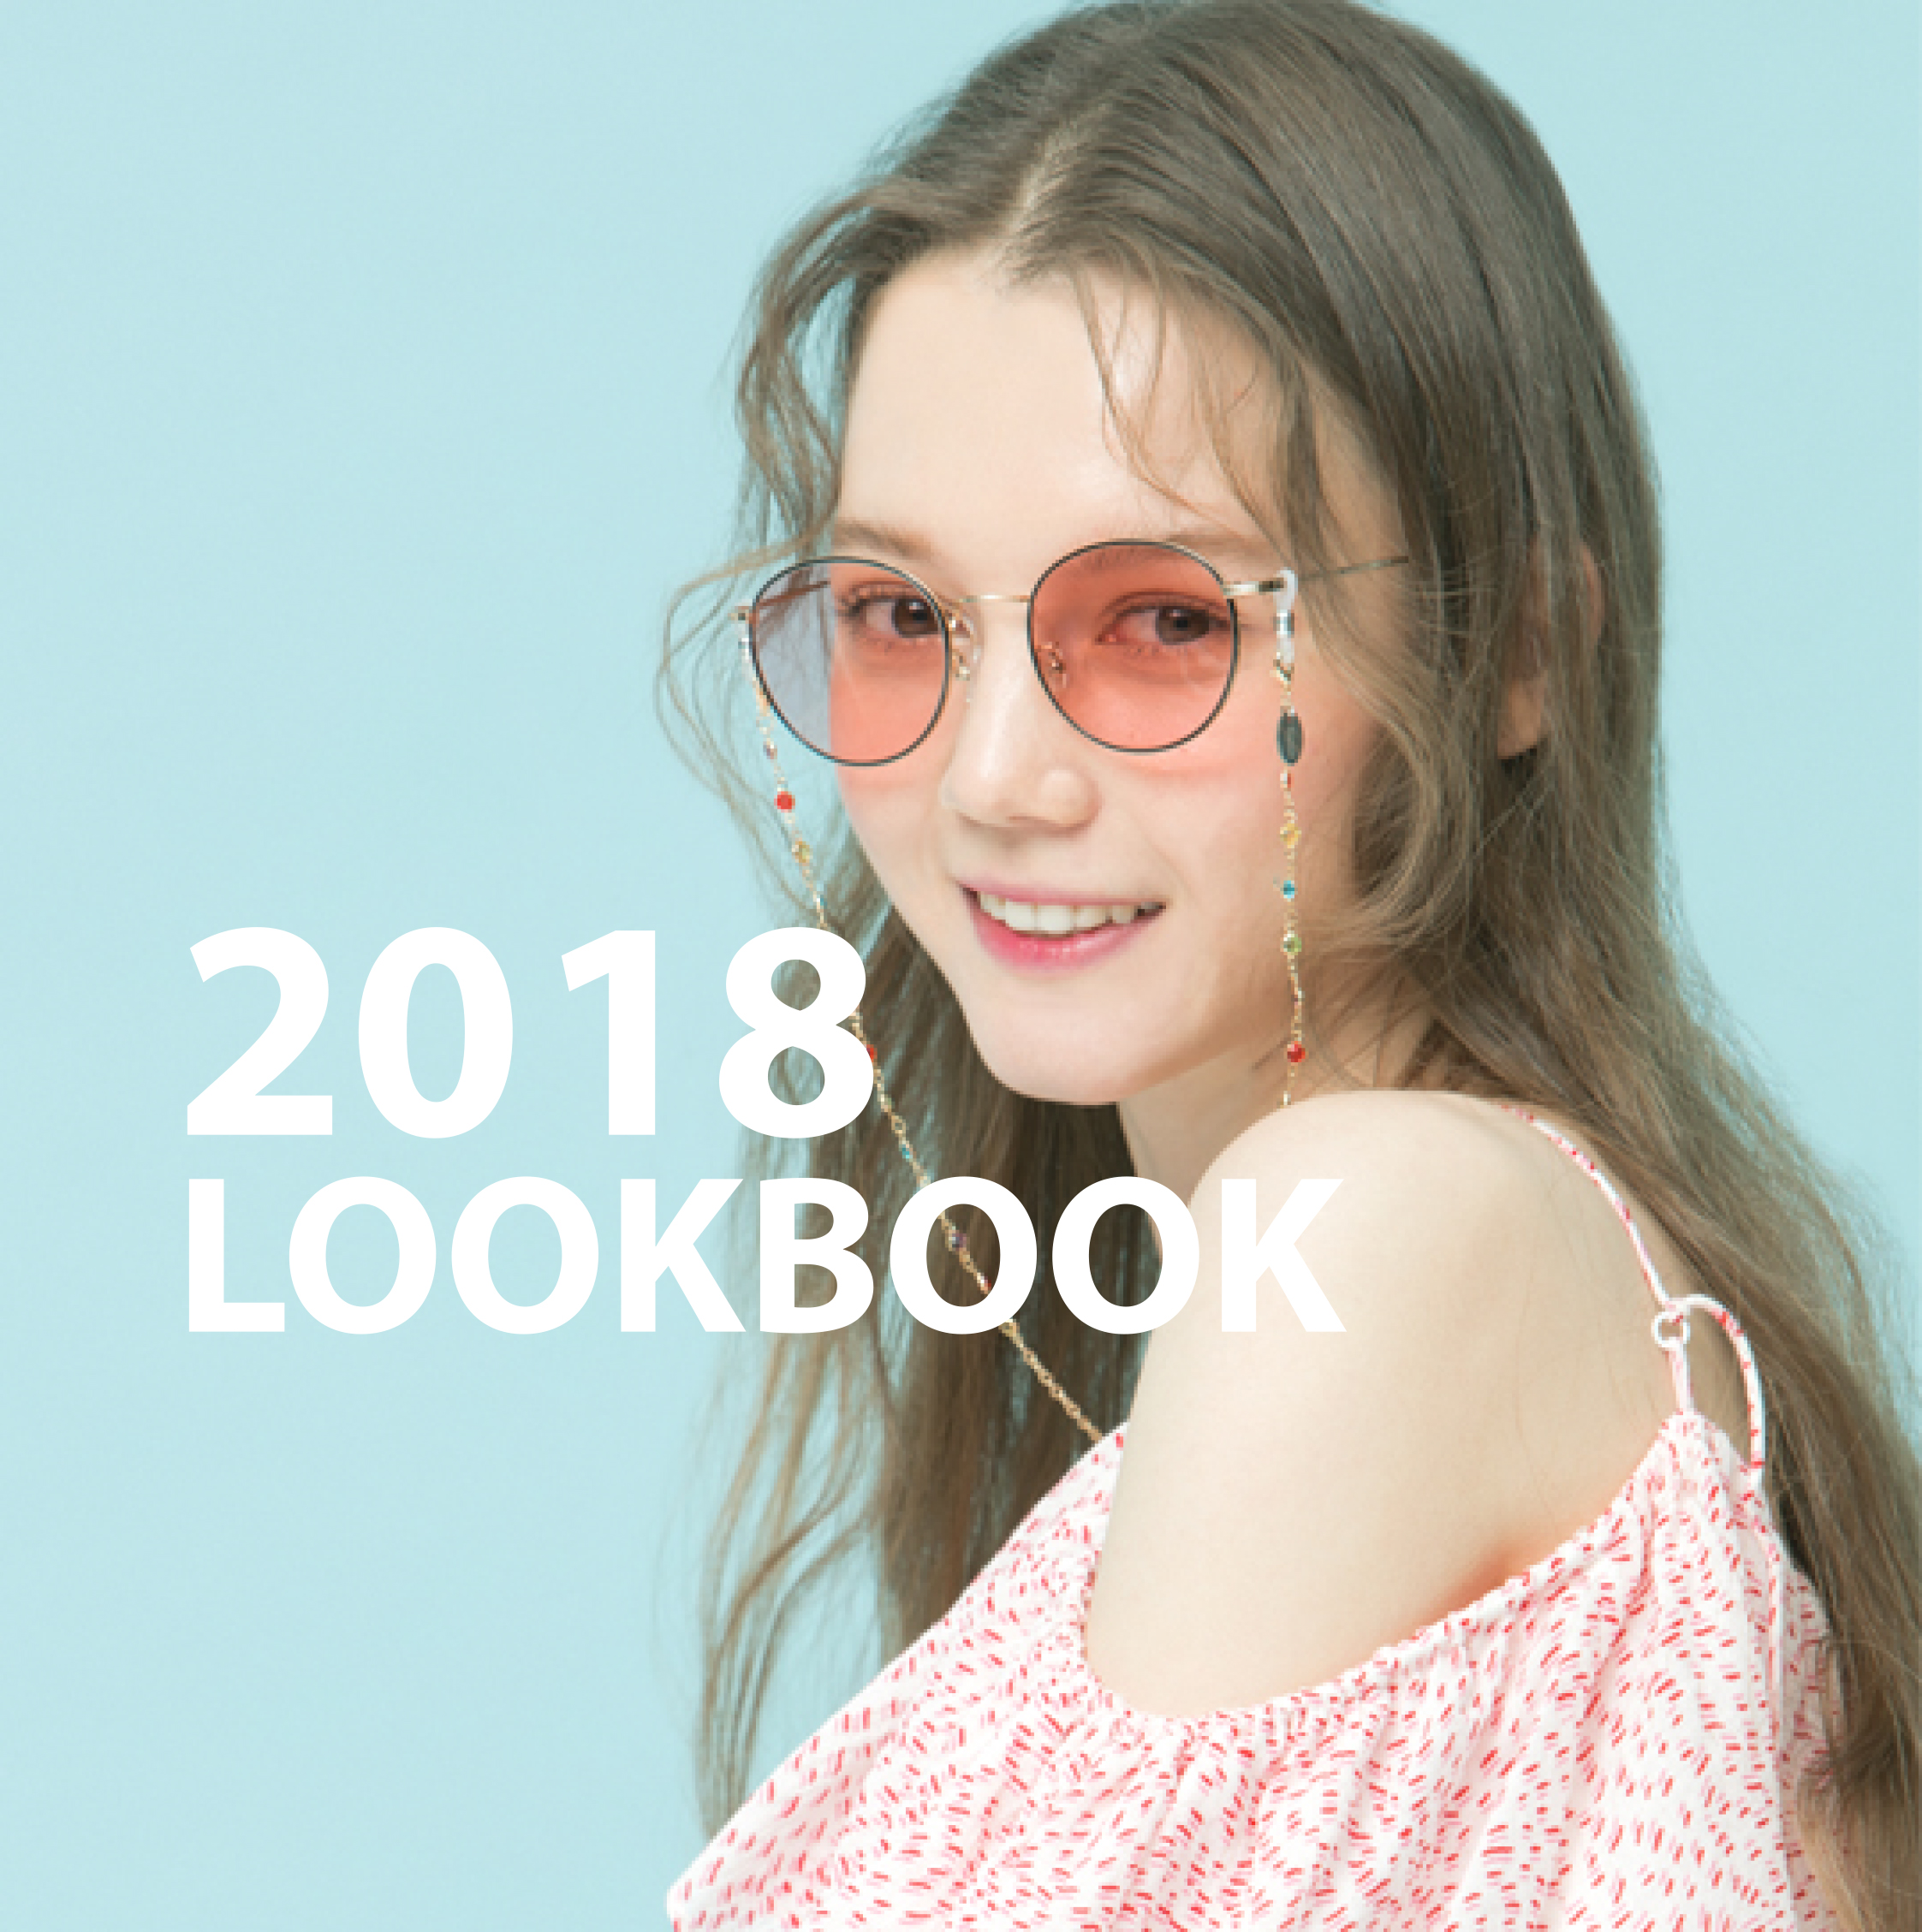 2018 LOOKBOOK